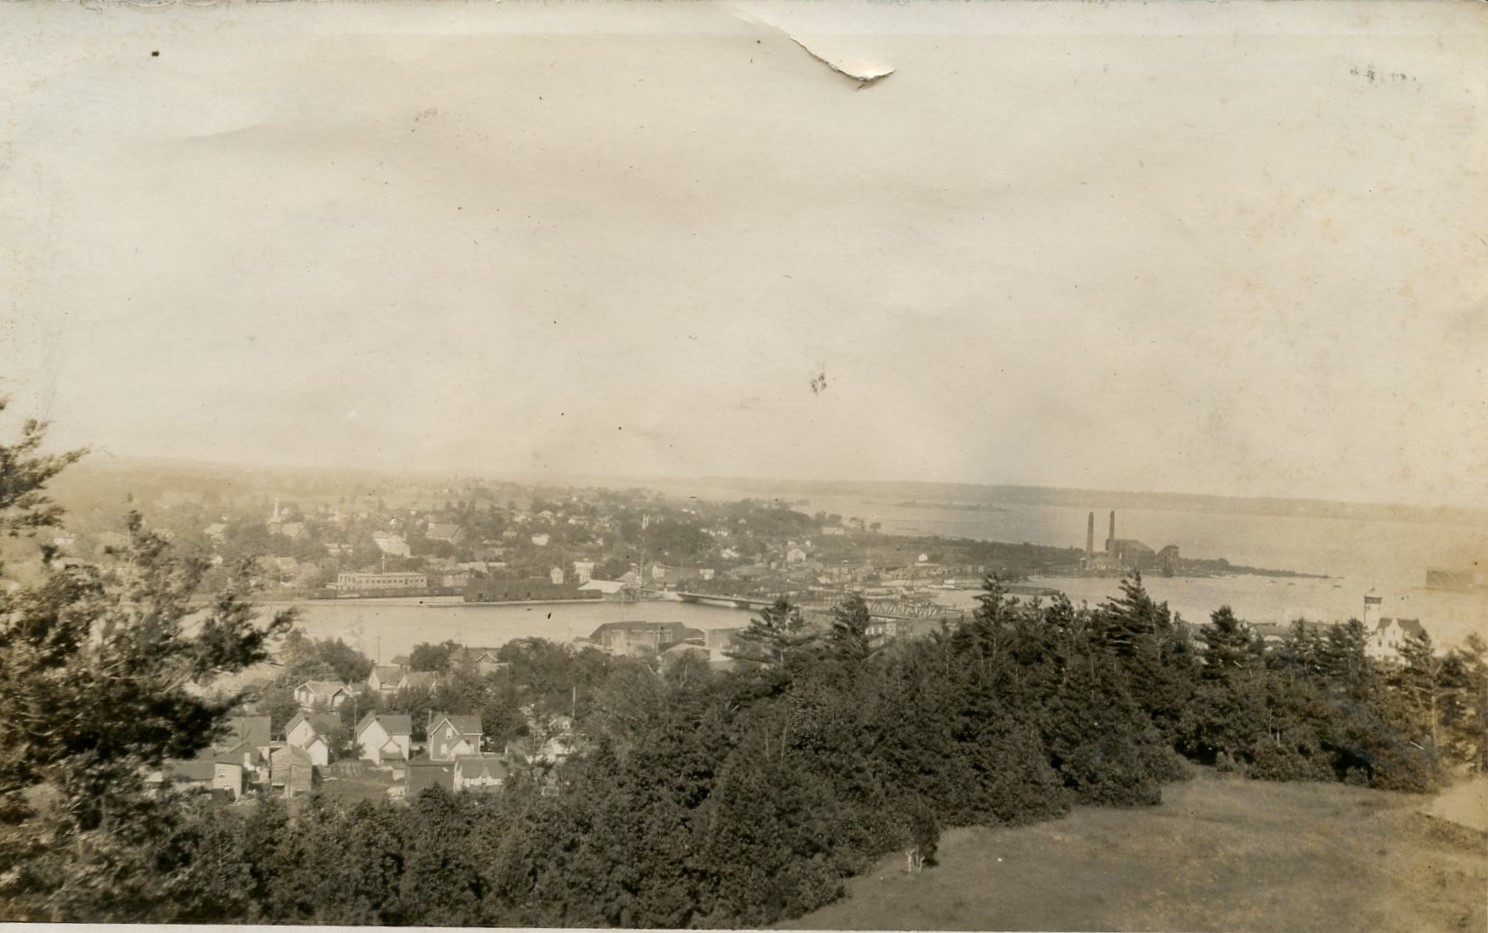 View of Trenton and main Bridge from the Mountain